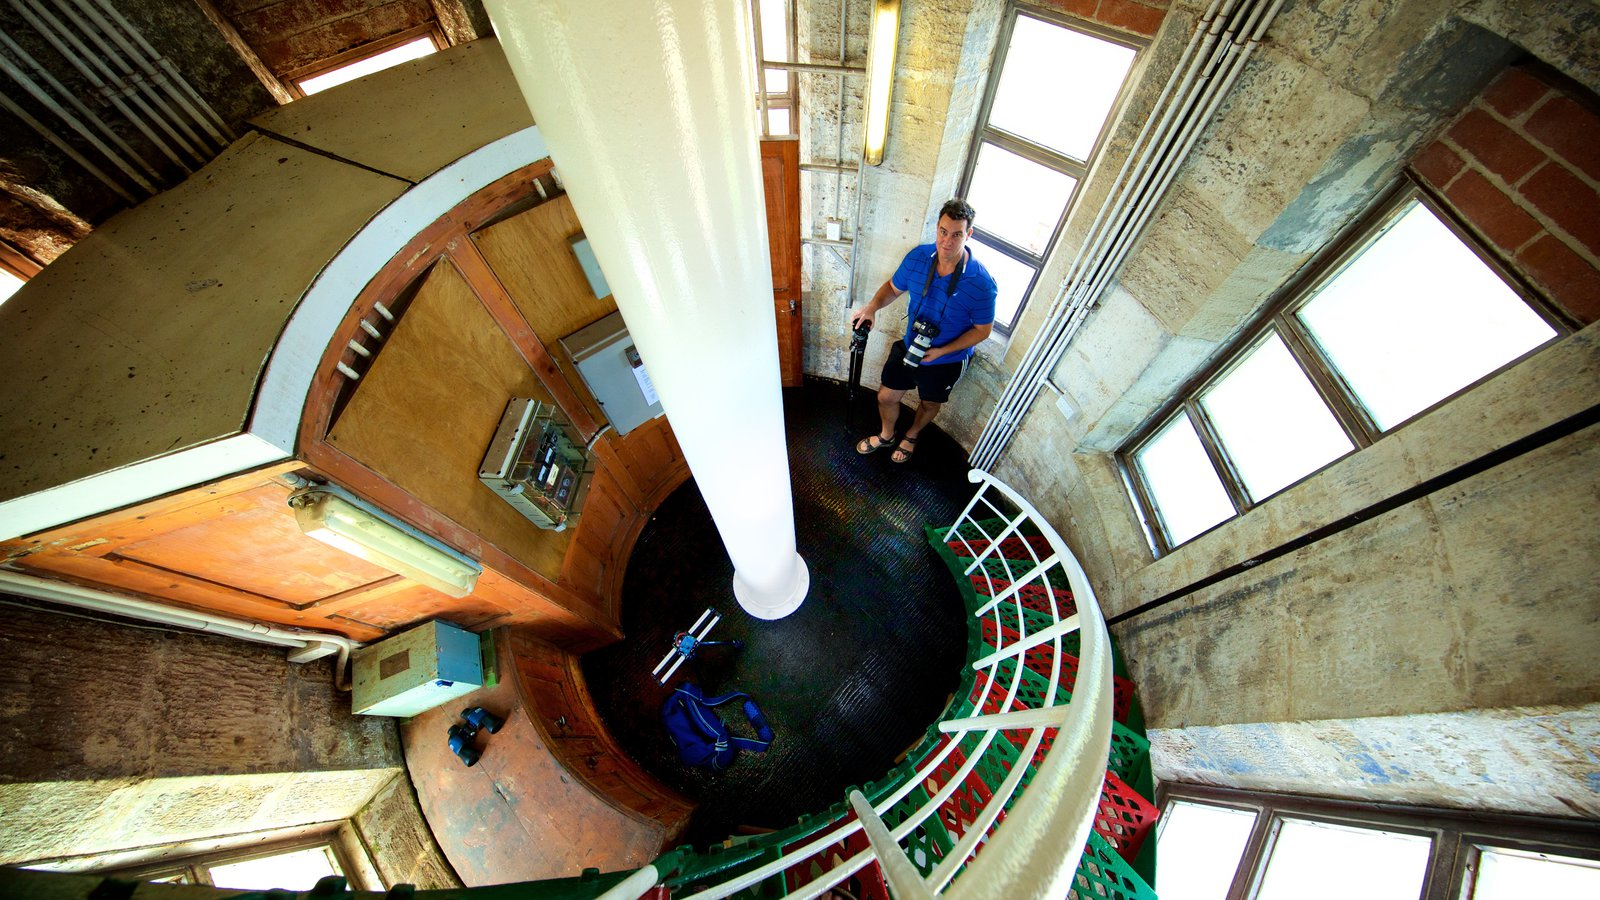 Cape Leeuwin Lighthouse featuring interior views as well as an individual male